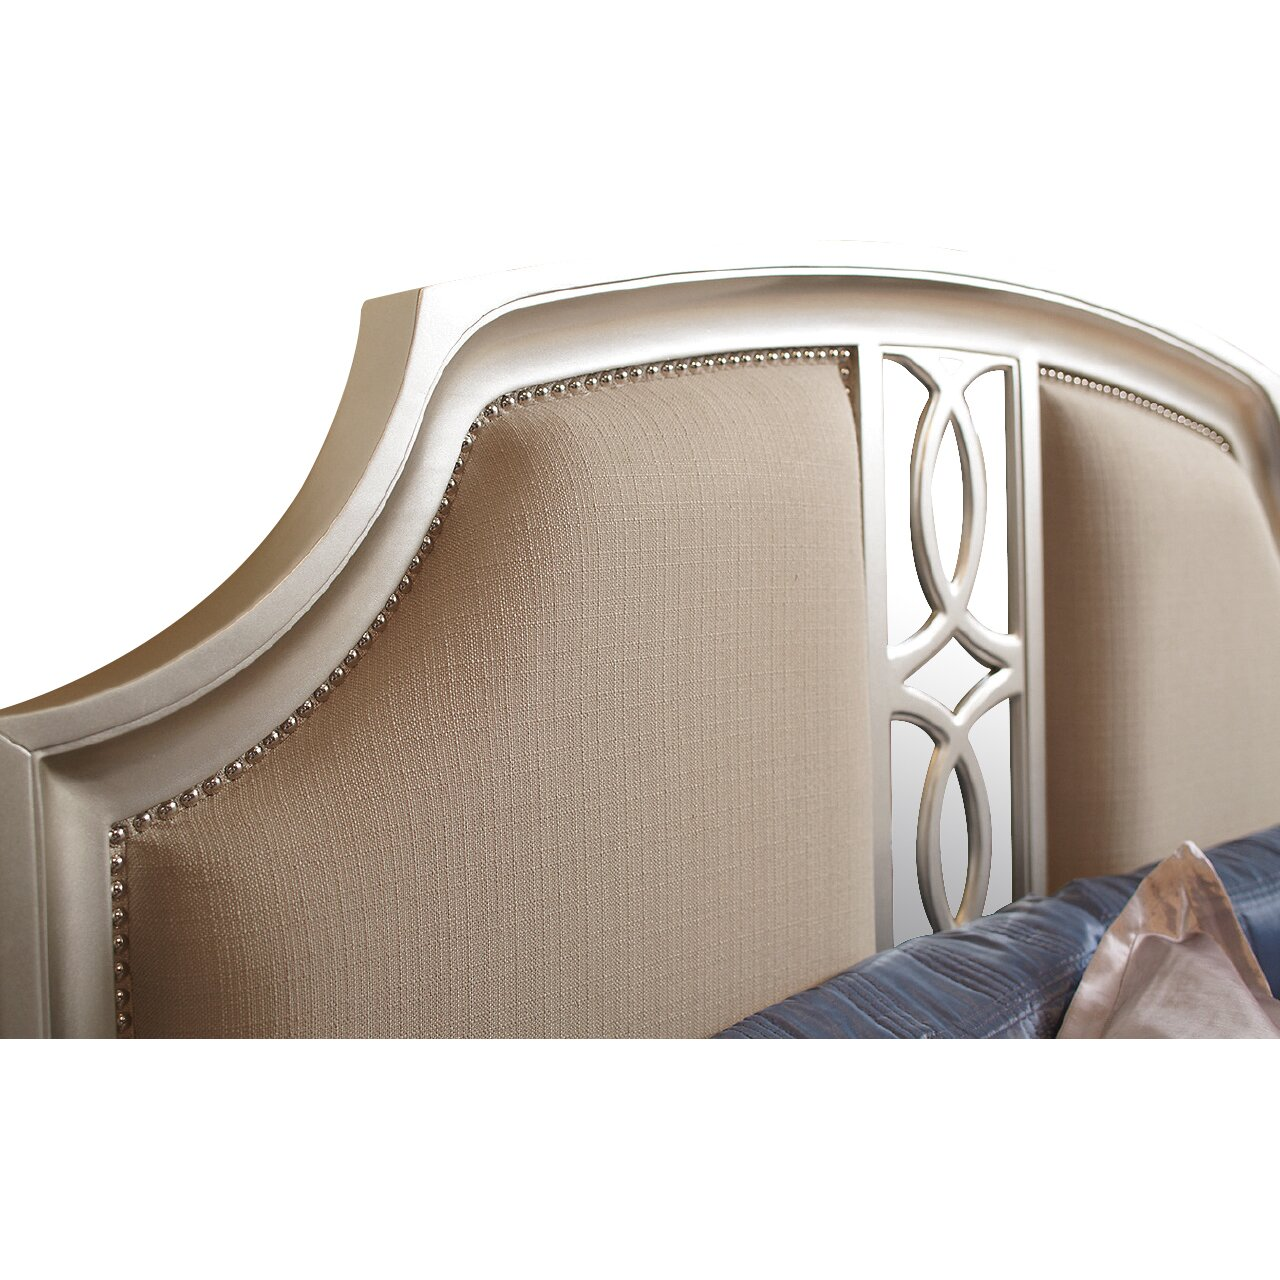 Leather Living Room Furniture Sets besides Bassett Bedroom Furniture Traditional Style additionally Zipcode E2 84 A2 Design Angelique Upholstered Panel Headboard ZIPC2544 furthermore 219041 further Antique Wooden Bedroom Set China Bedroom Sets For Sale. on upholstered king bedroom furniture sets